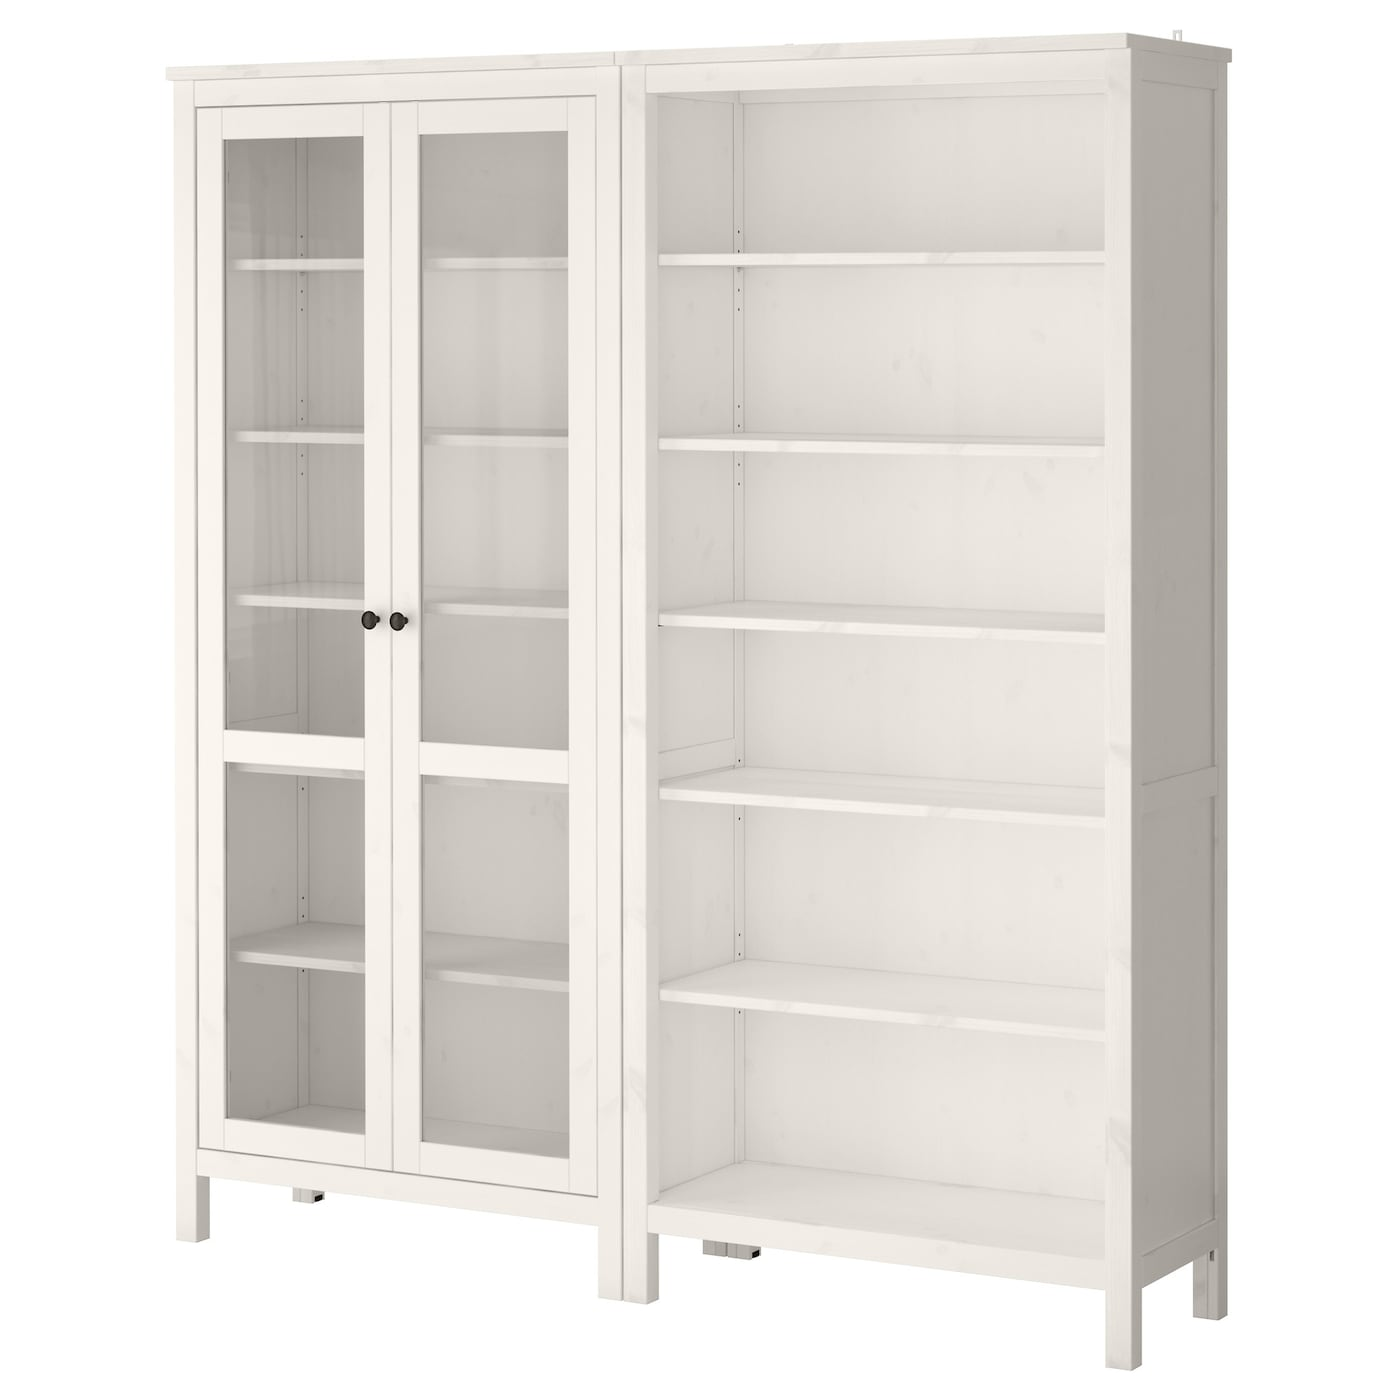 glass door room billy wall gray ins bookshelf white vintage bookcases built instructions challenge from instruc beneath with design doors week bookcase ikea one